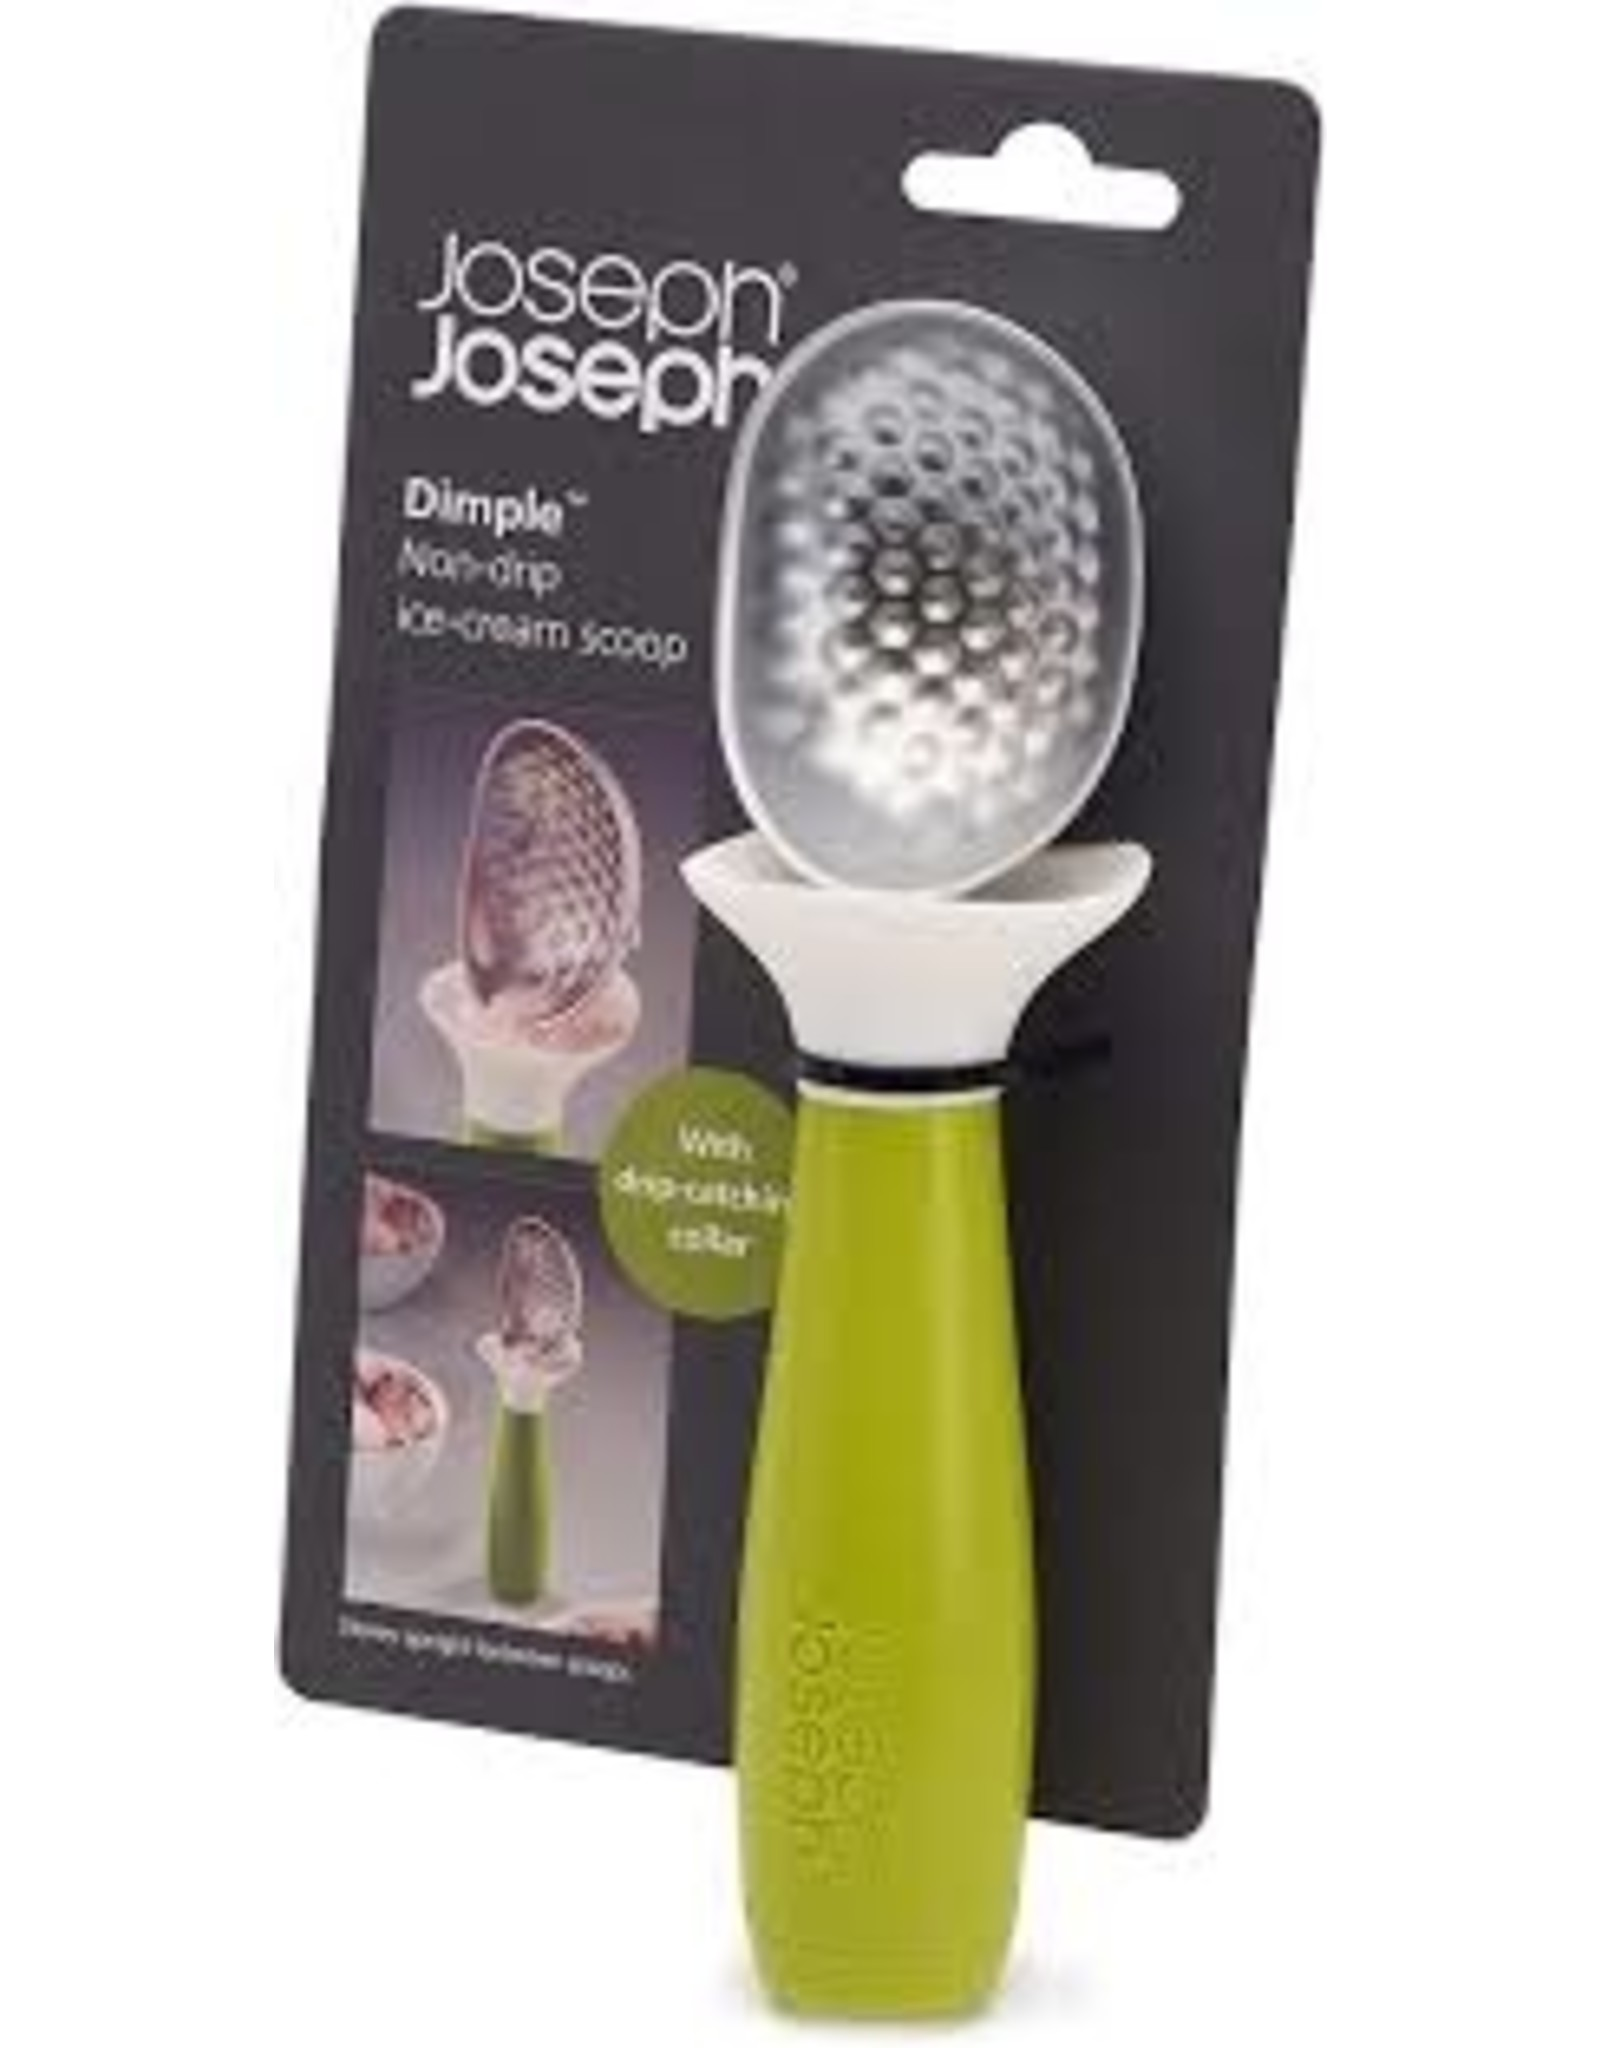 Joseph & Joseph J&J Dimple - Green/White